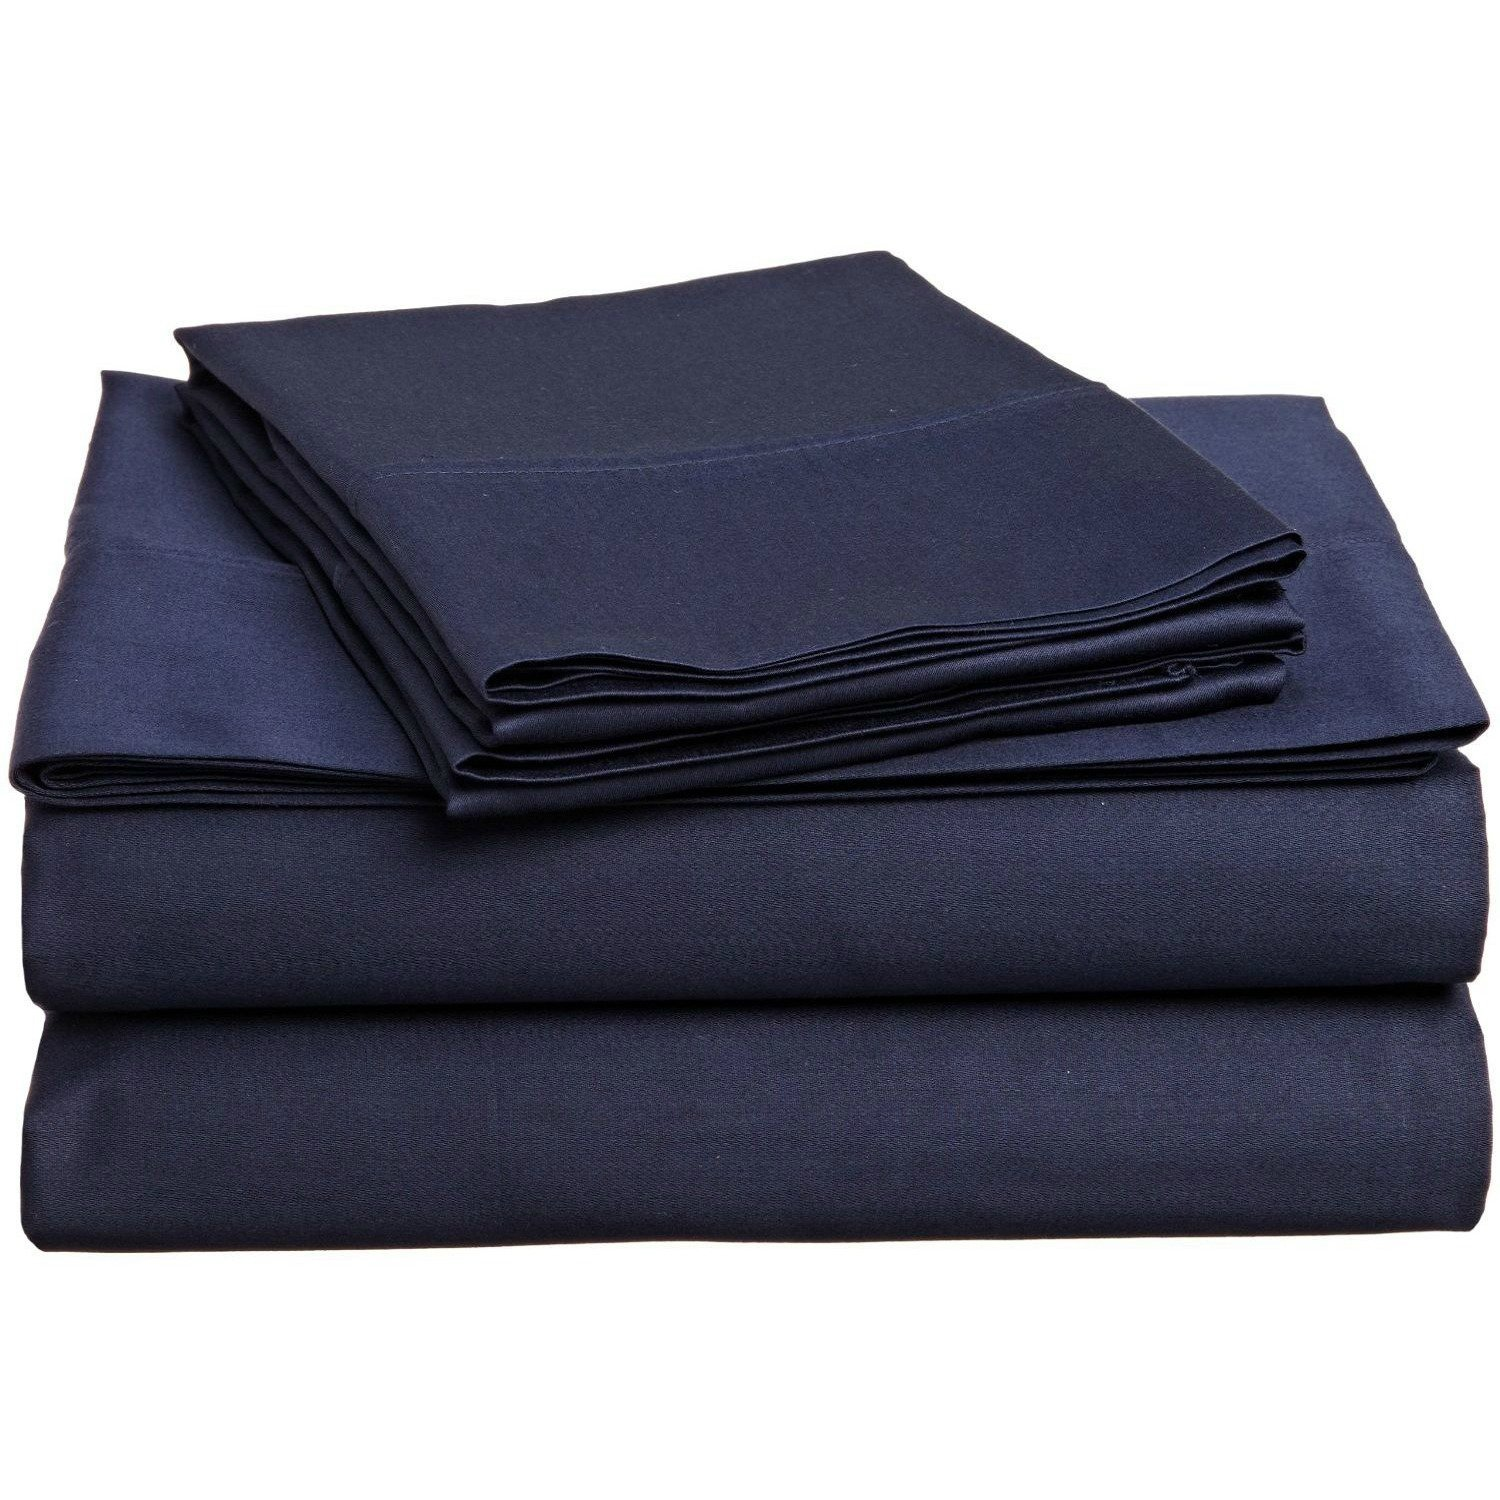 3 Piece Twin Navy Blue Bed Sheet Set, Ultra cozy, super soft, lightweight, durable, satiny smooth, Fully Elasticized, Sateen weave with 300 thread count, Royal Blue, Cotton